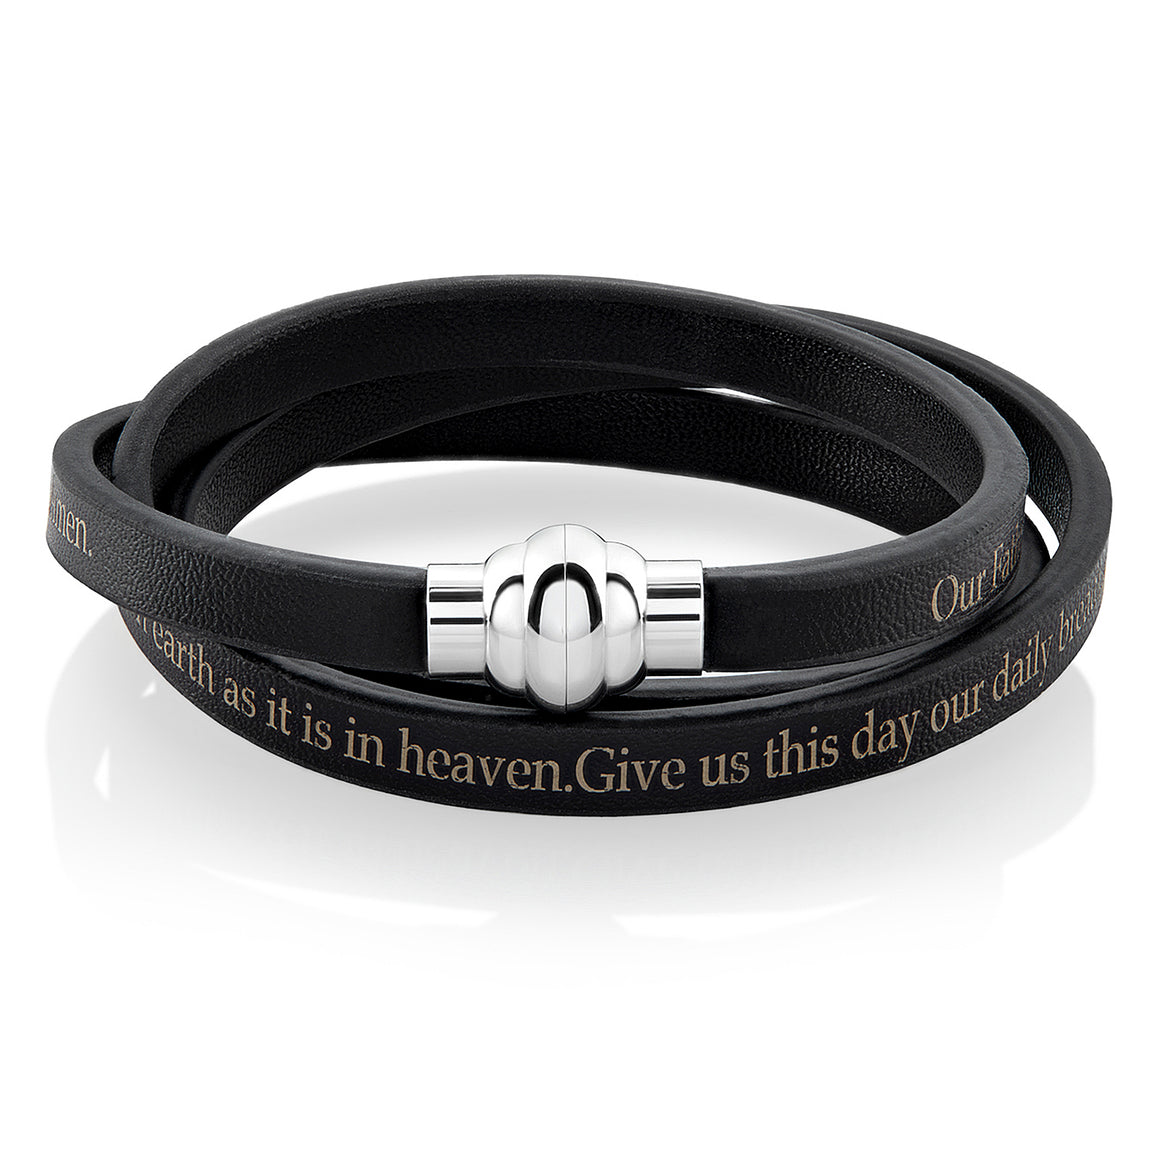 Crucible Men's or Women's Leather Lord's Prayer Wrap Bracelet with Magnet Clasp